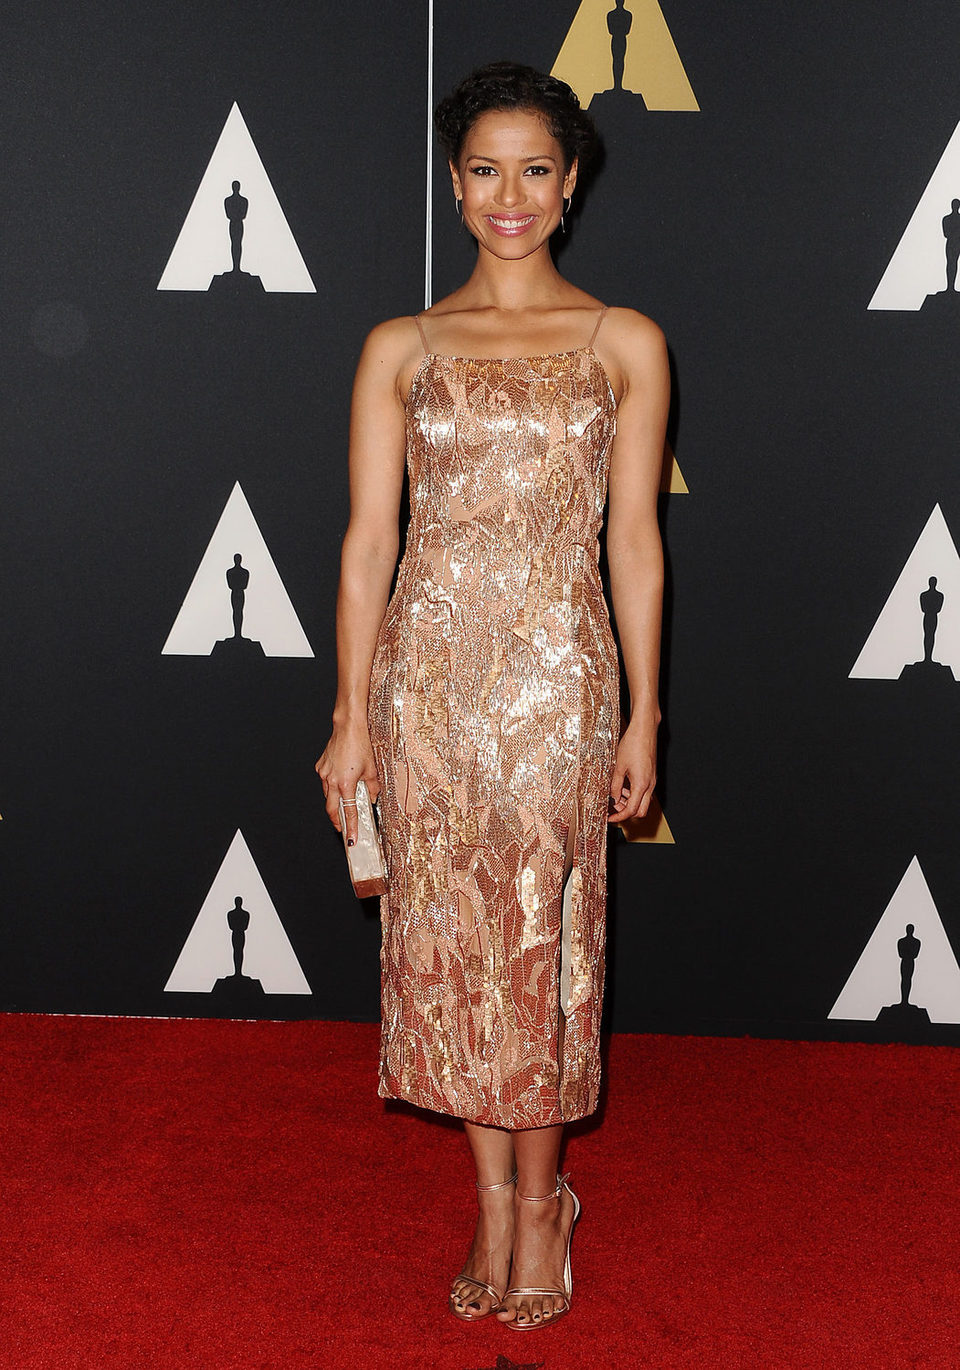 Gugu Mbatha-Raw en los Governor's Awards 2015